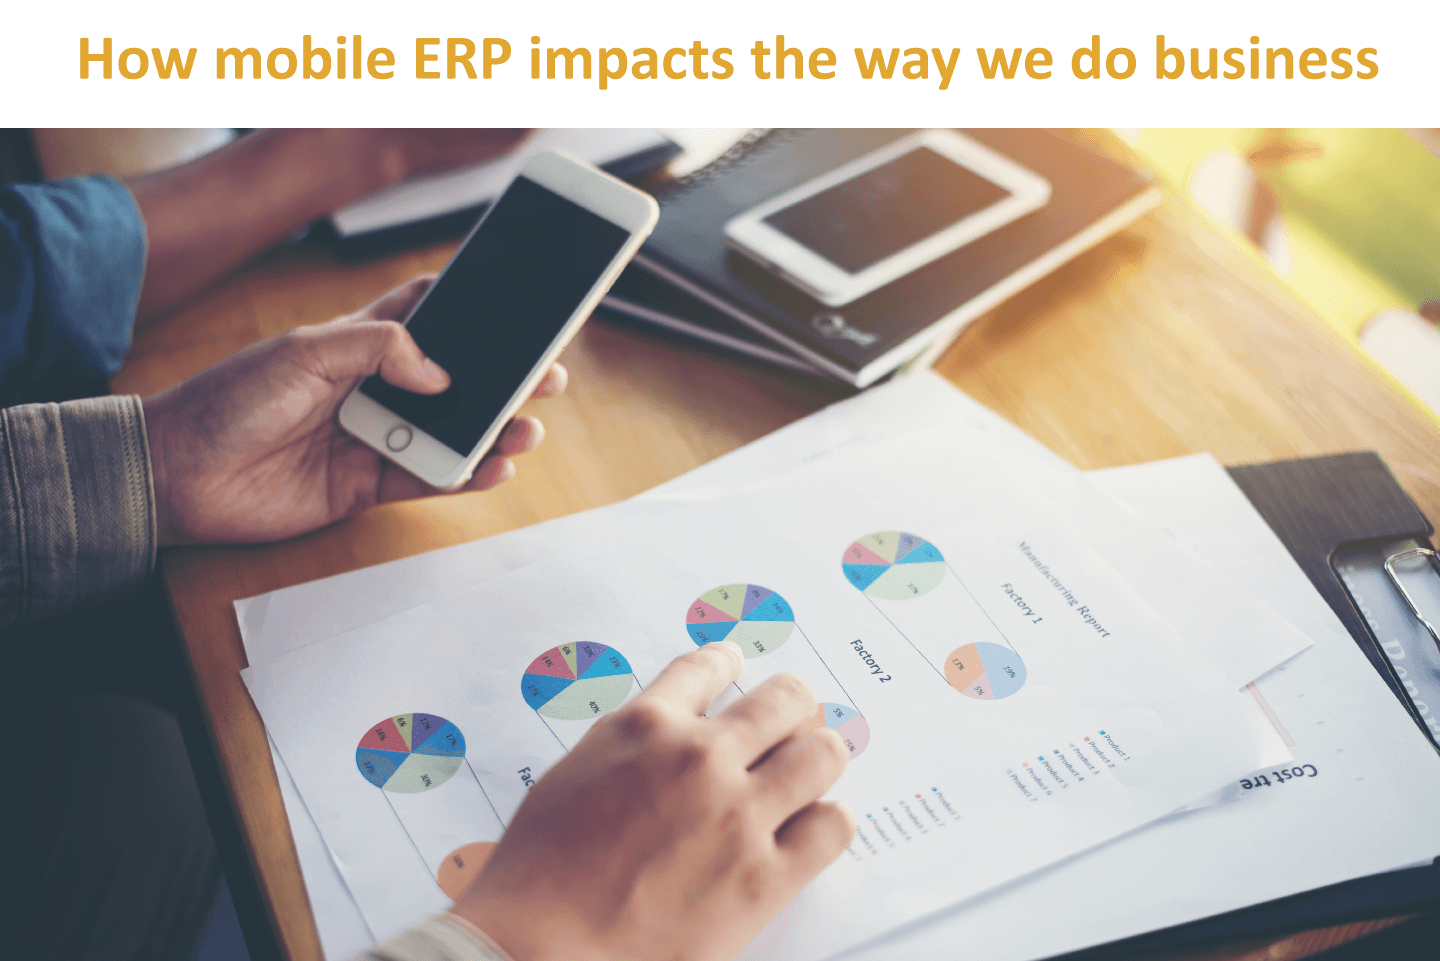 How mobile ERP impacts the way we do business